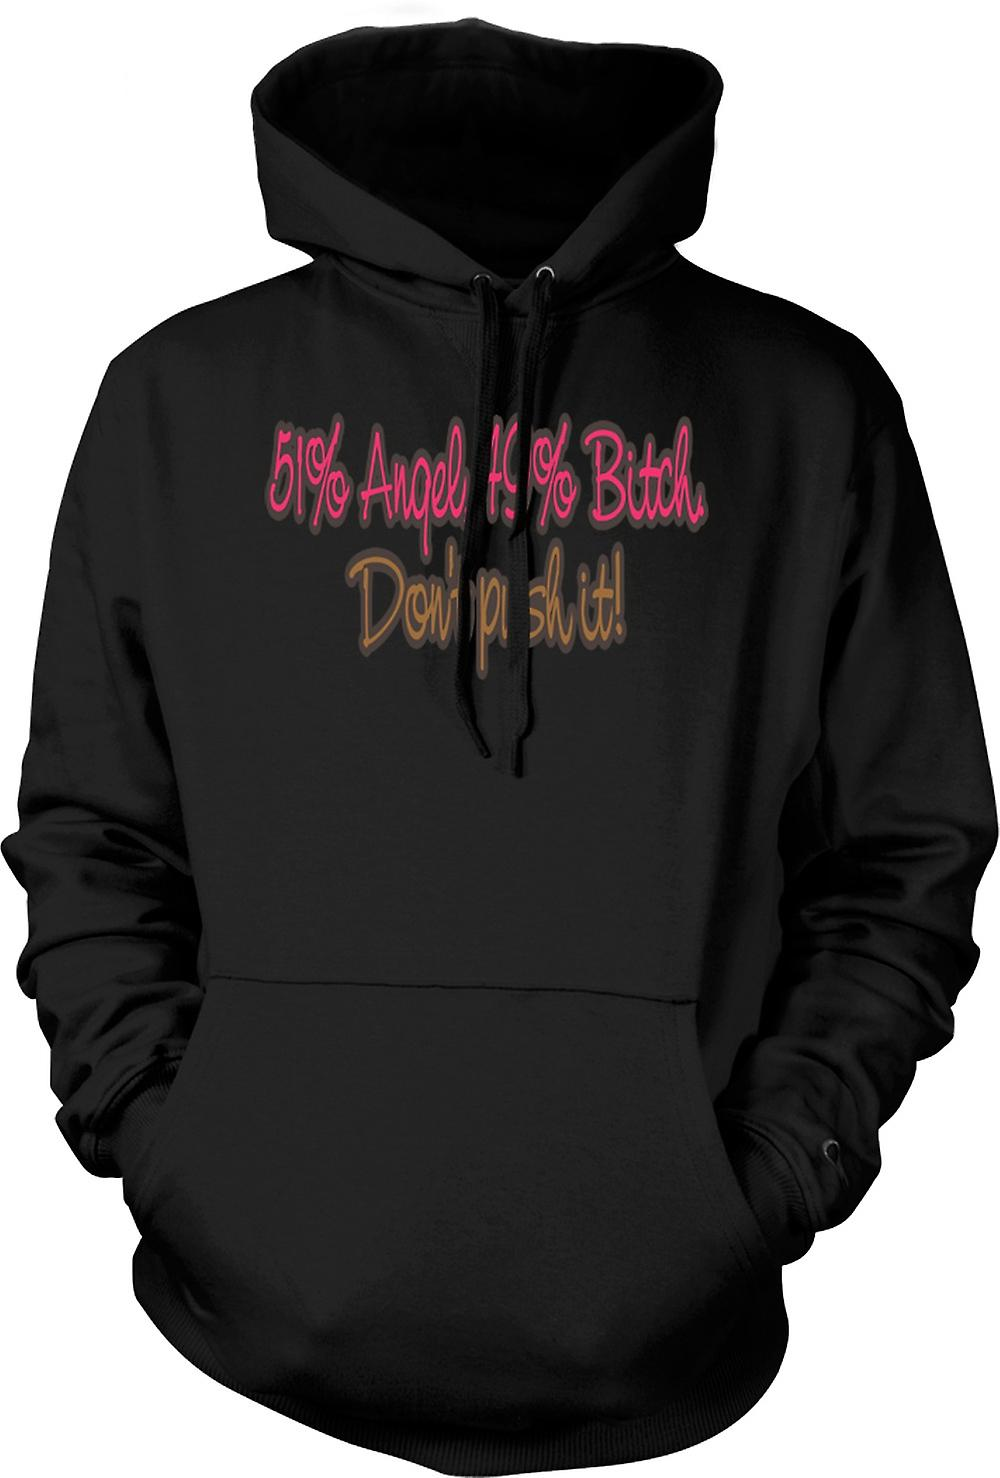 Mens Hoodie - 51% Angel, 49% Bitch Don't Push It! - Quote